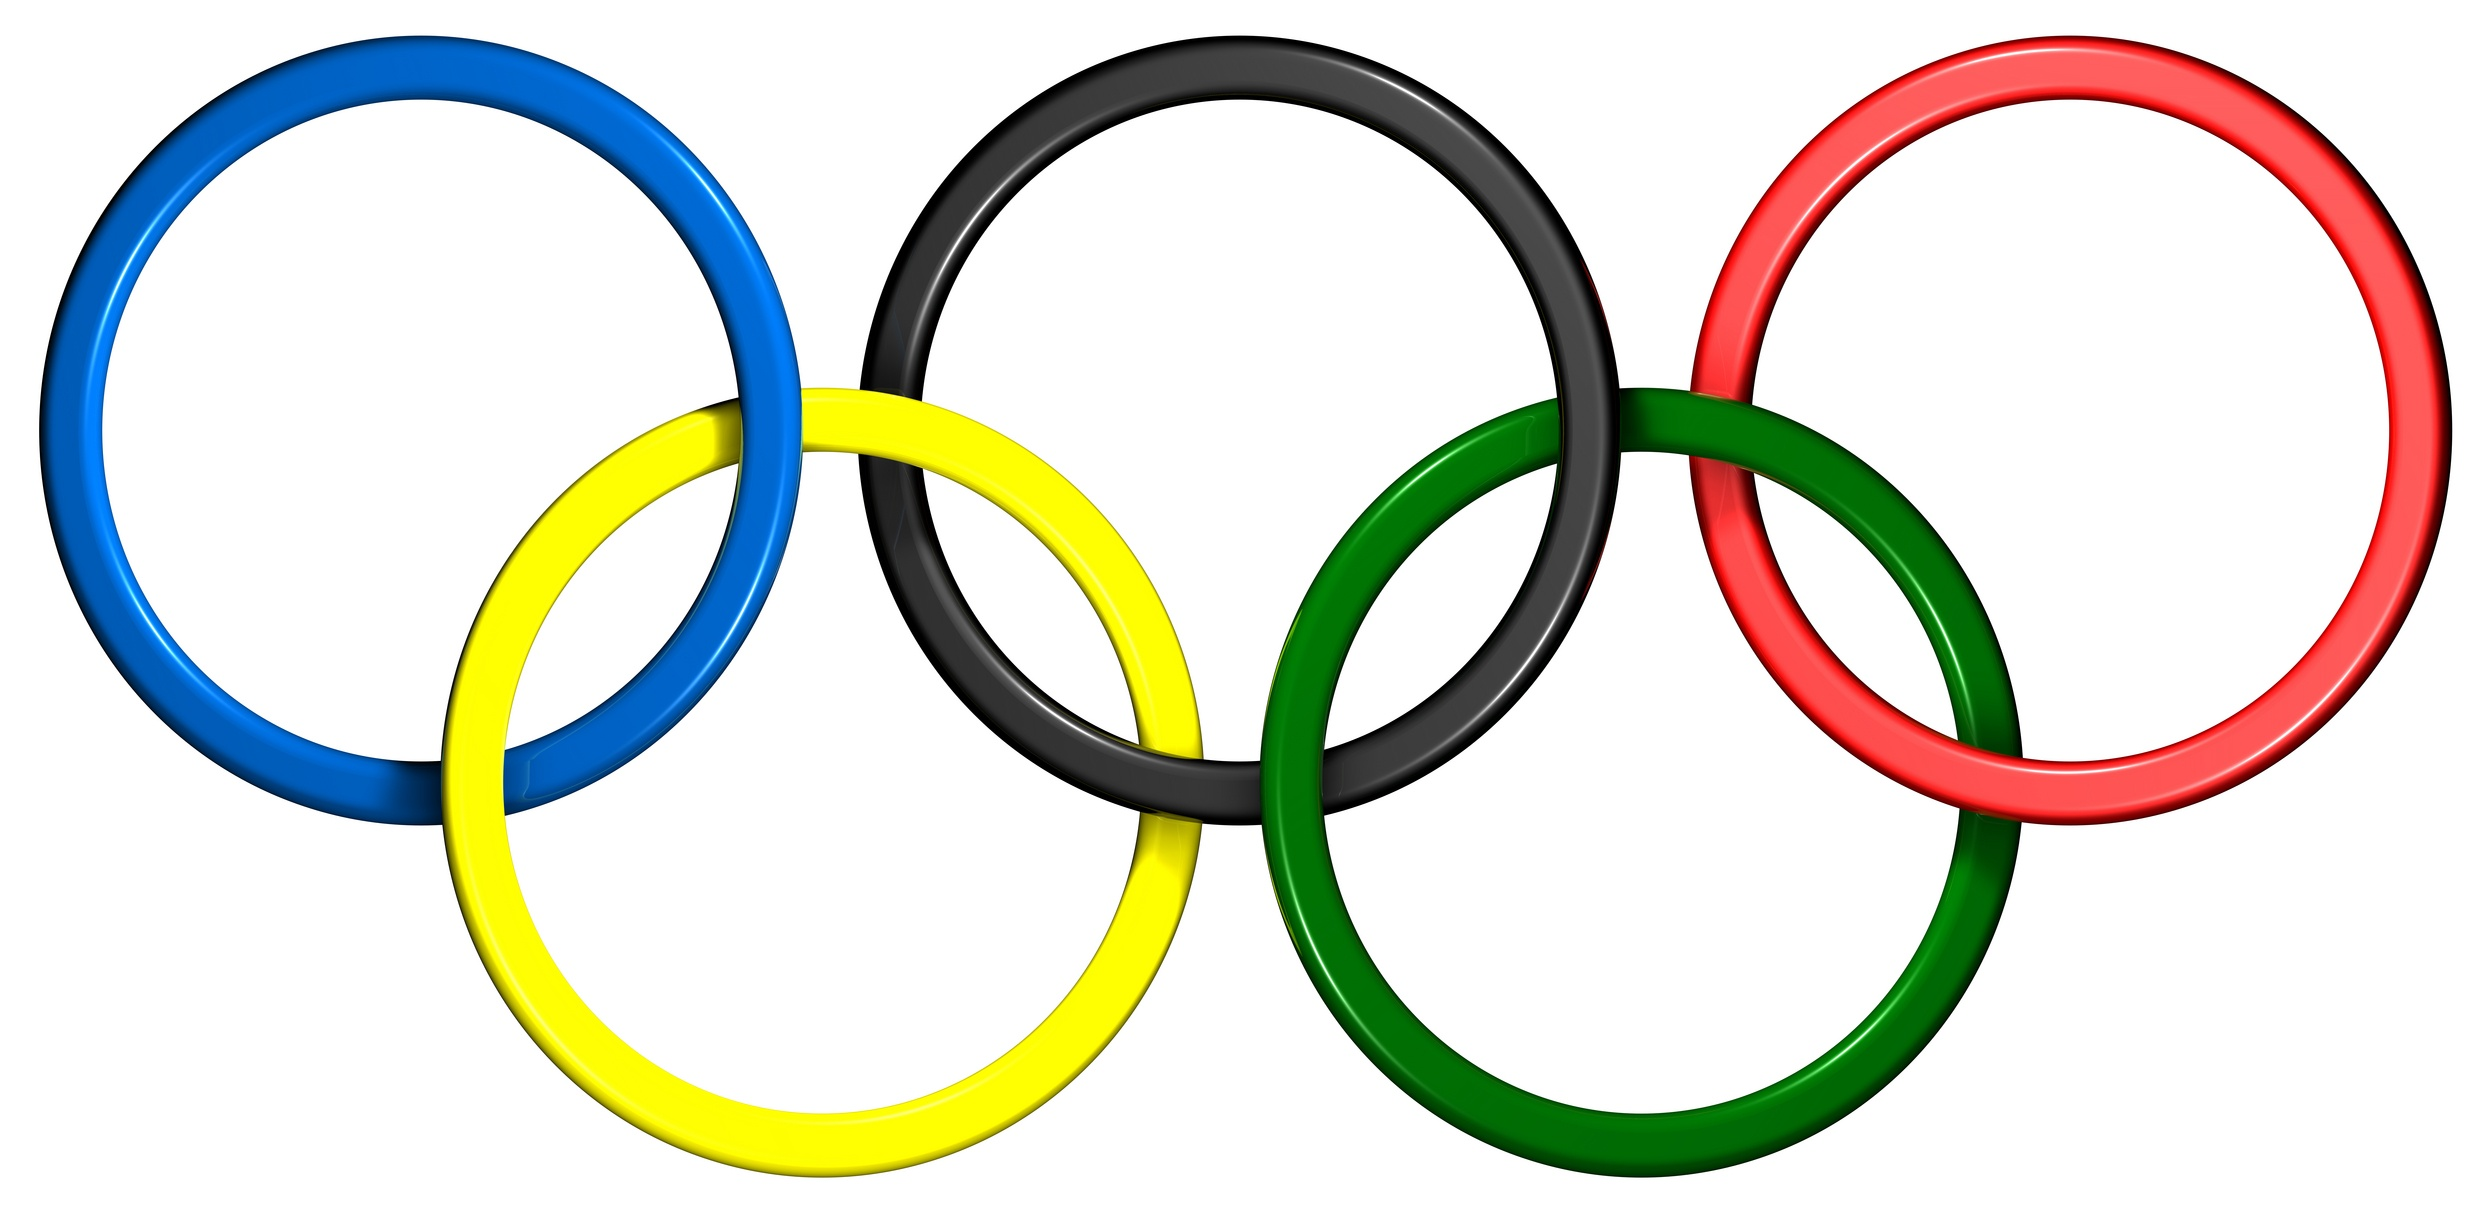 Clipart of olympic rings image black and white library Free Olympics Rings, Download Free Clip Art, Free Clip Art on ... image black and white library